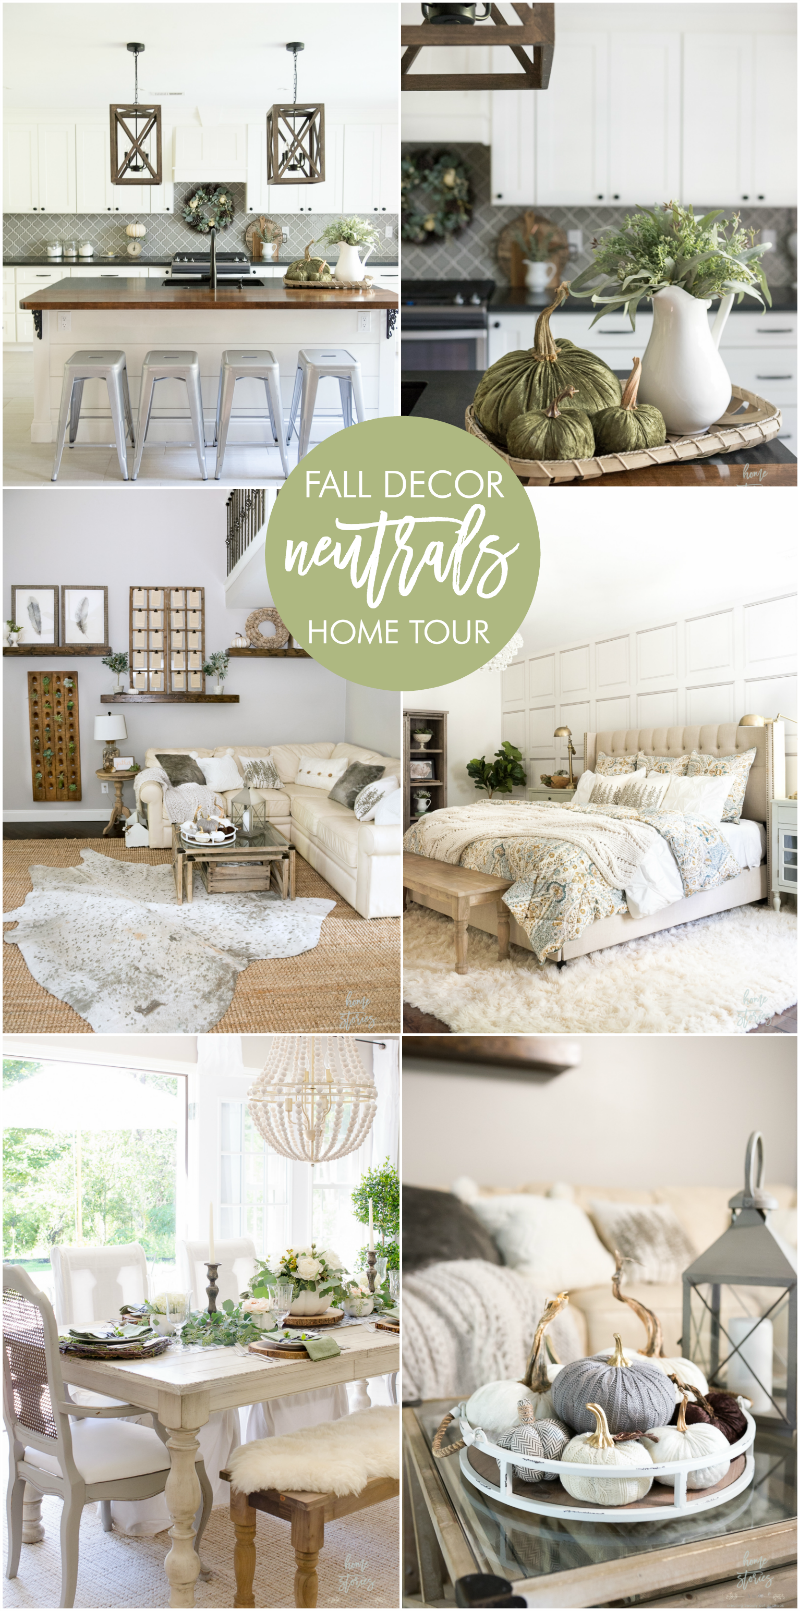 Neutral Fall Decor Home Tour